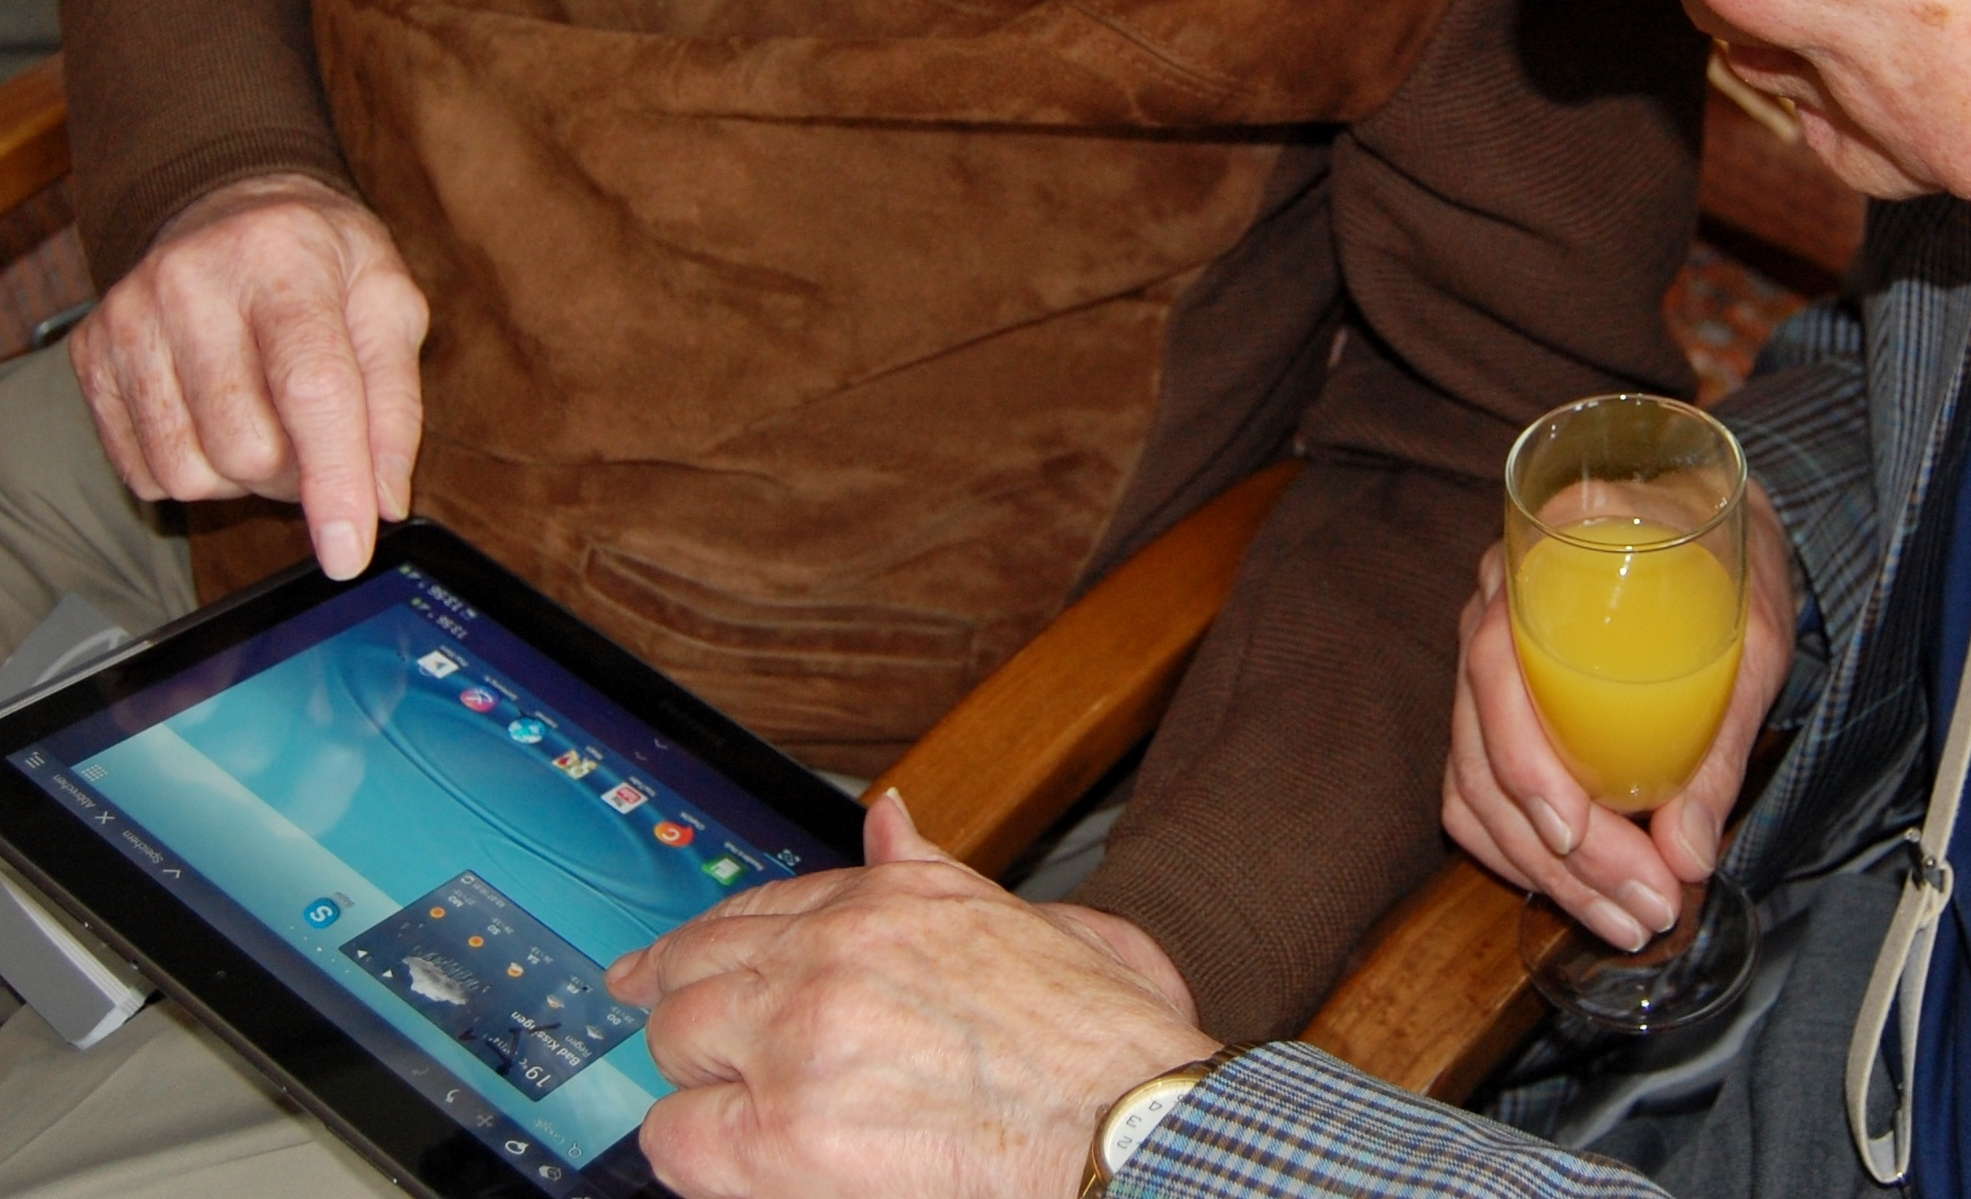 hands of two men using a tablet computer